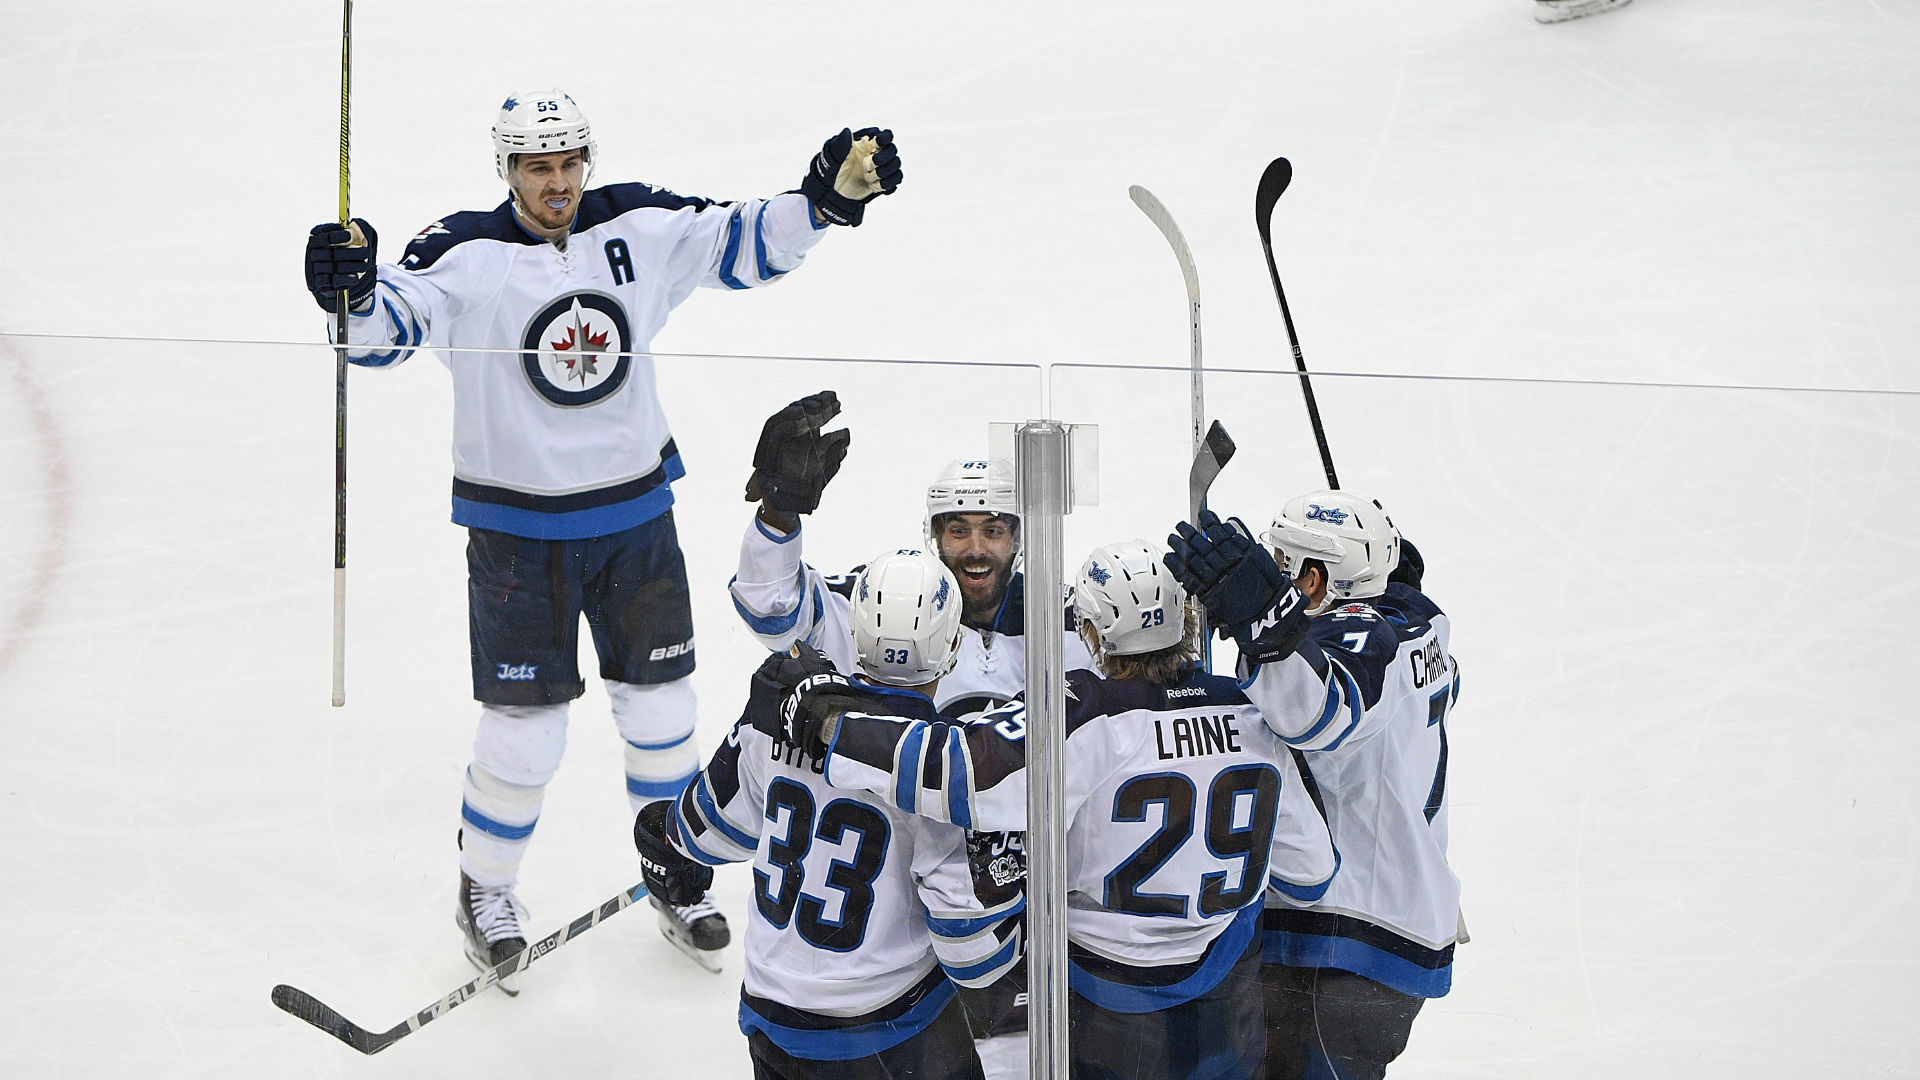 Winnipeg-jets-ftr-090717-getty_16ues4x4pw6ic1s17kczd3de6c